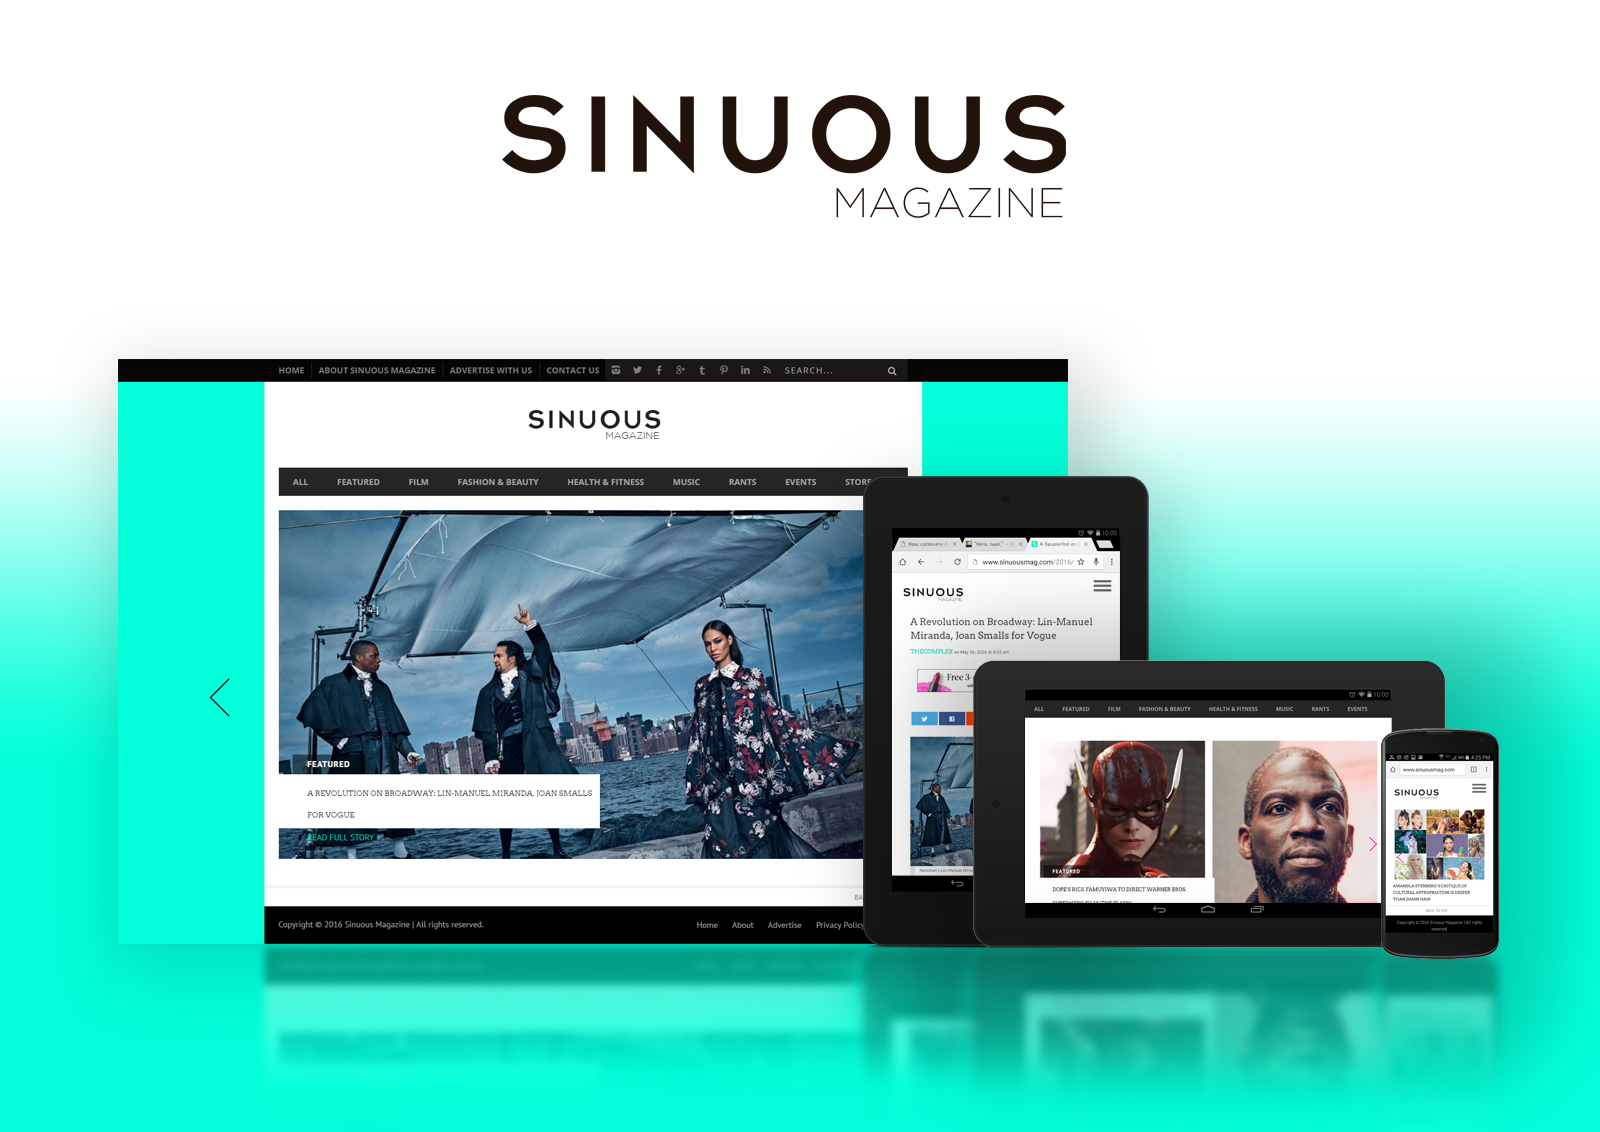 Sinuous Magazine Design 2016